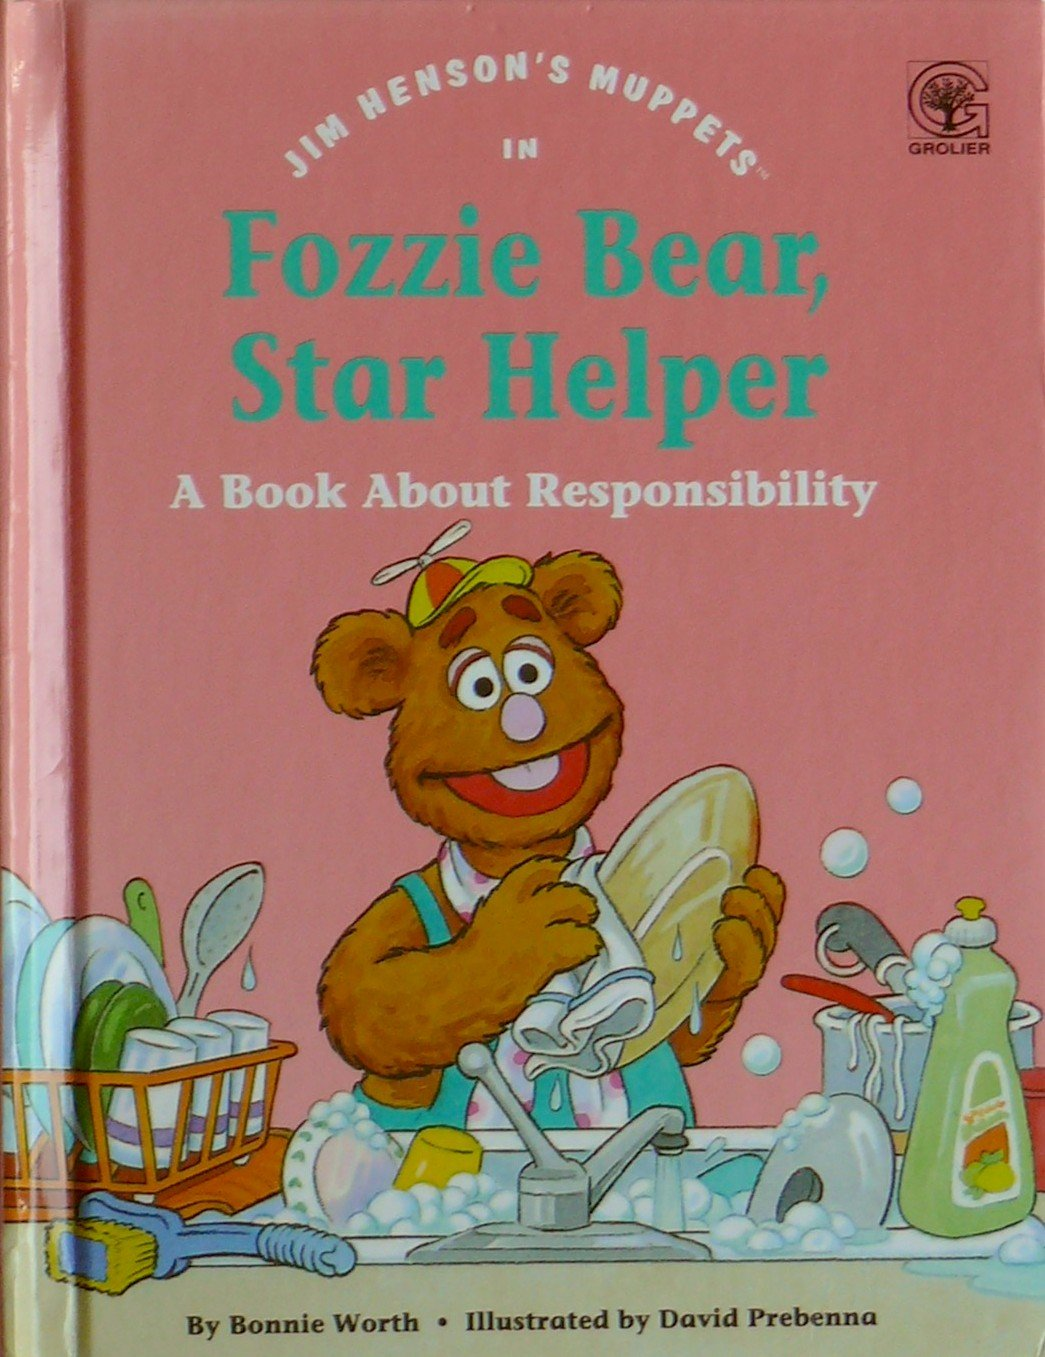 Download Jim Henson's Muppets in Fozzie Bear, Star Helper: A Book About Responsibility (Values to Grow On) ebook